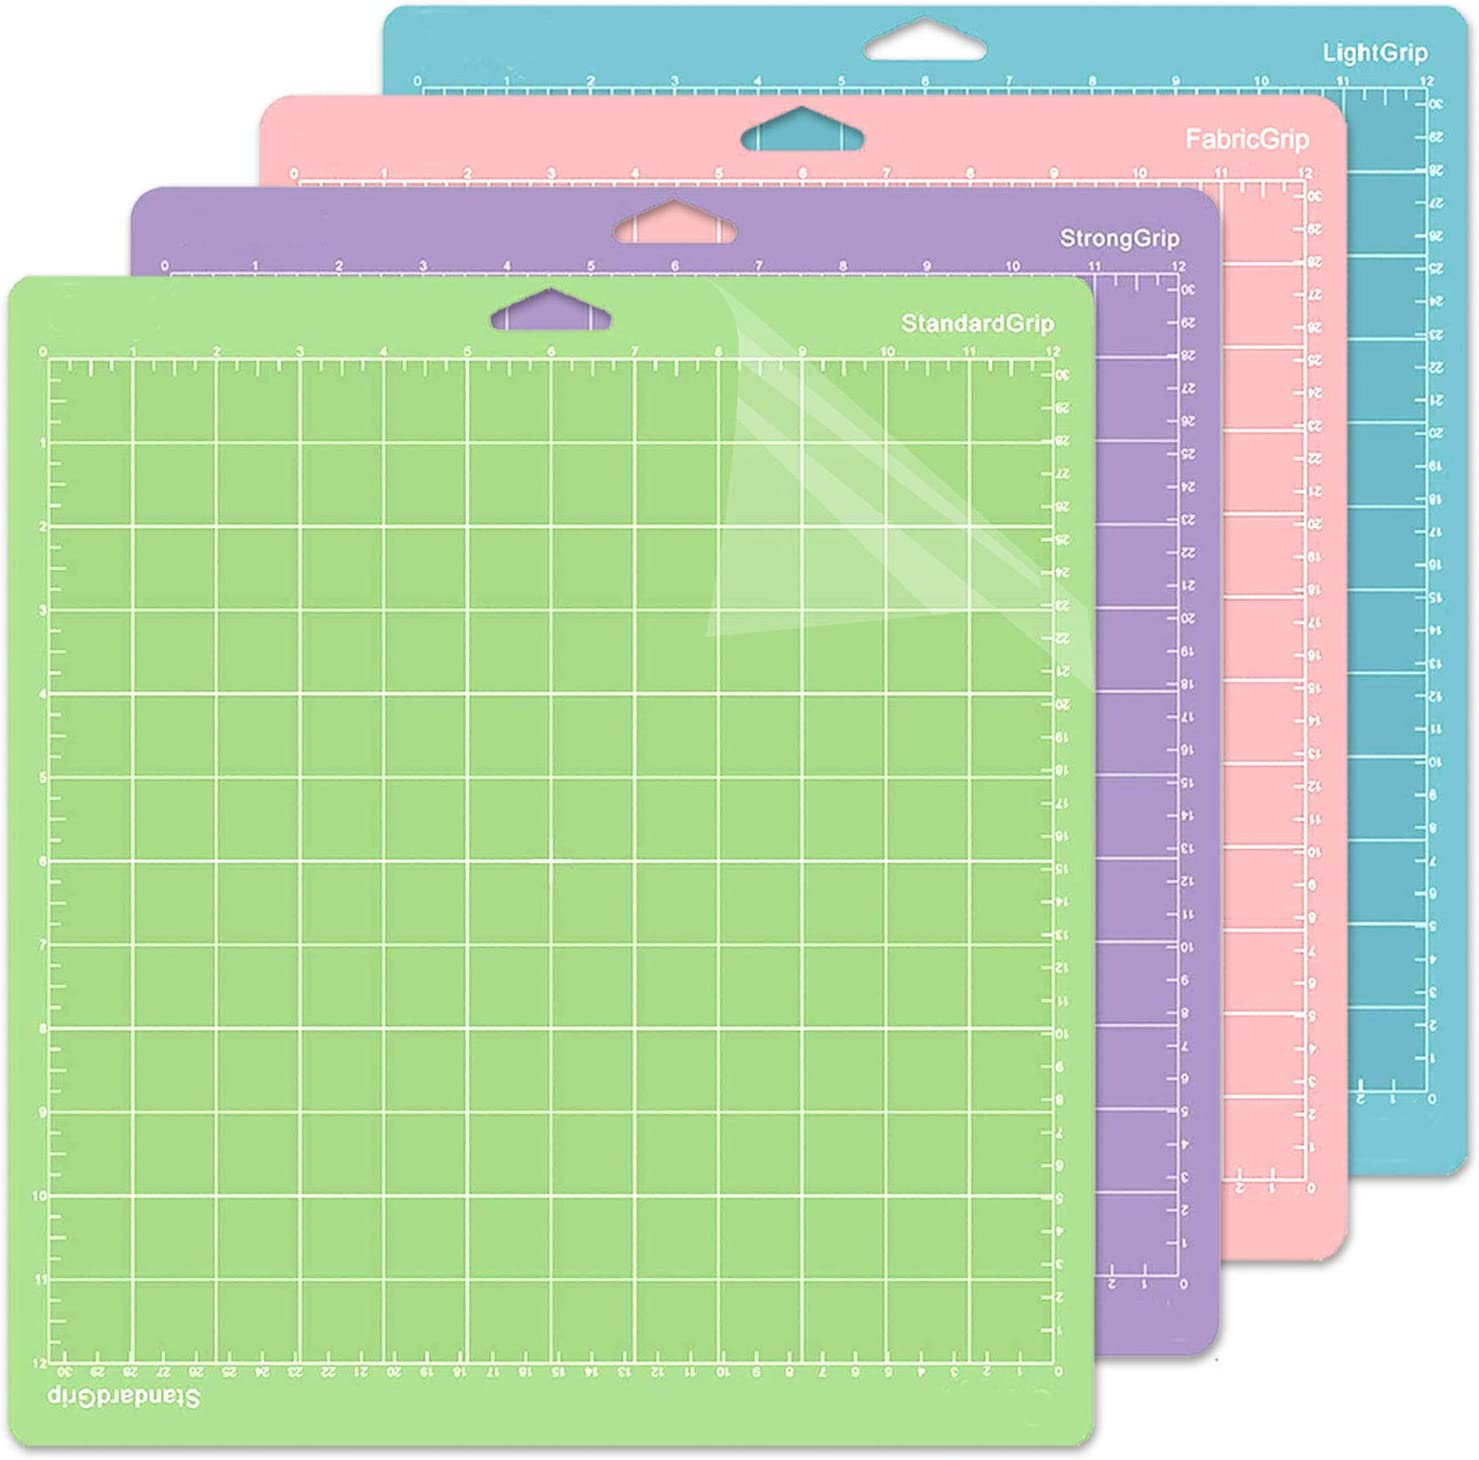 3 Pack Flexible Square Gridded Quilting Cut Mats Replacement for Crafts、Sewing and All Arts.(Variety Ecraft 12X12 Cutting Mat for Cricut Include StrongGrip//StandardGrip//LightGrip